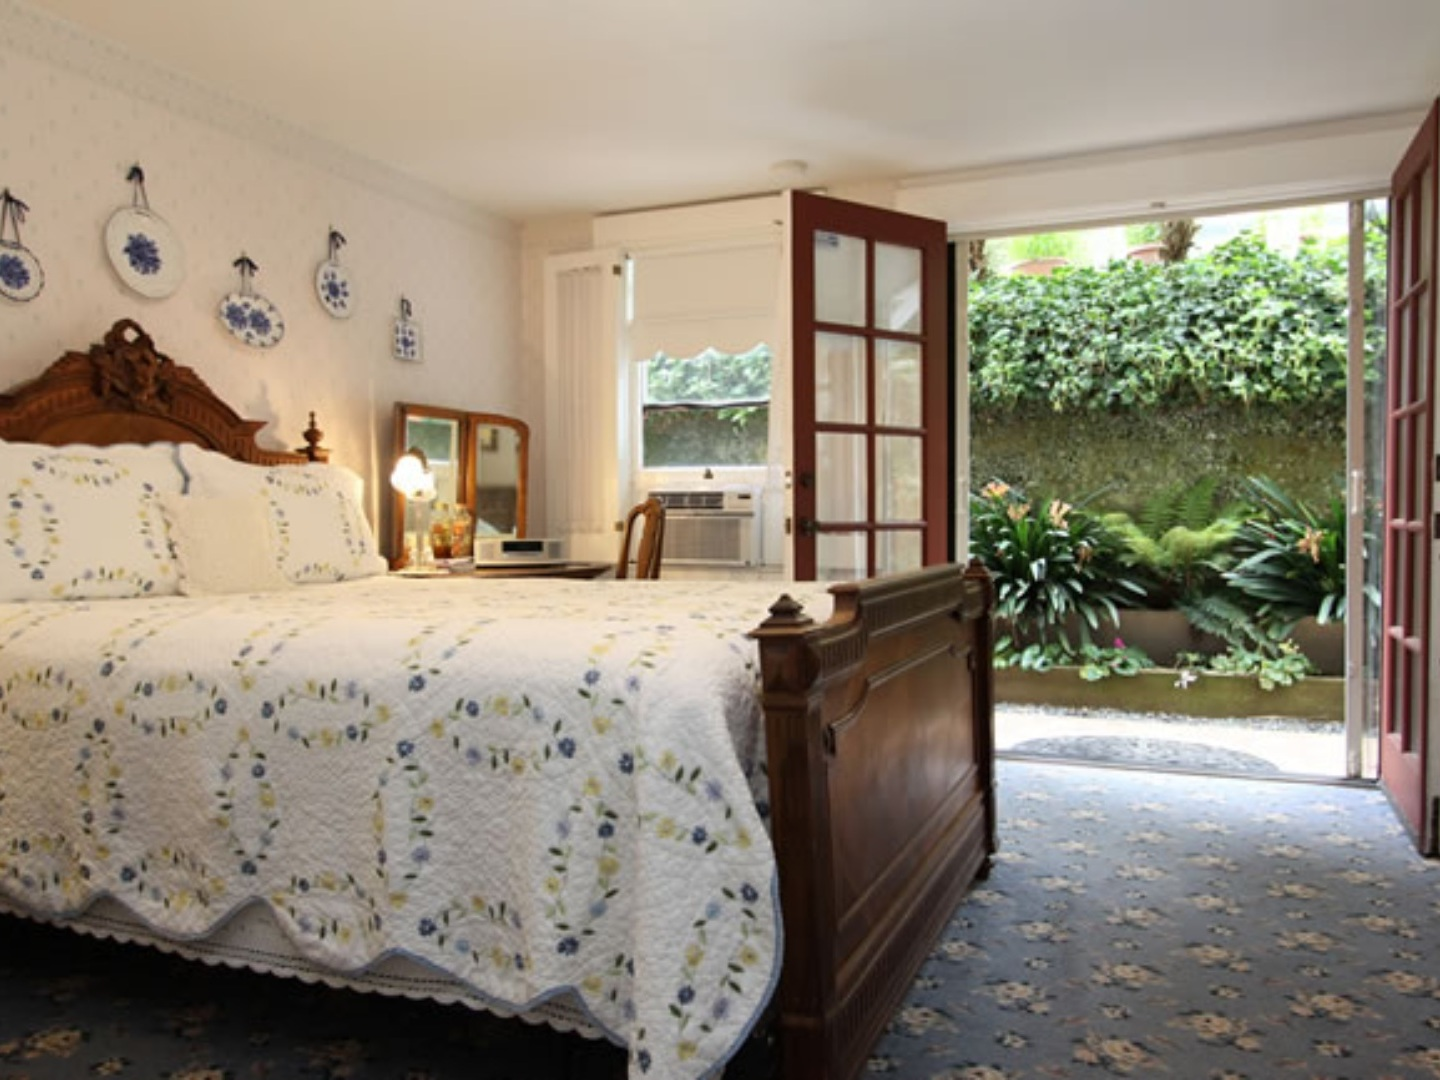 A bedroom with a large bed in a room at Raford Inn.